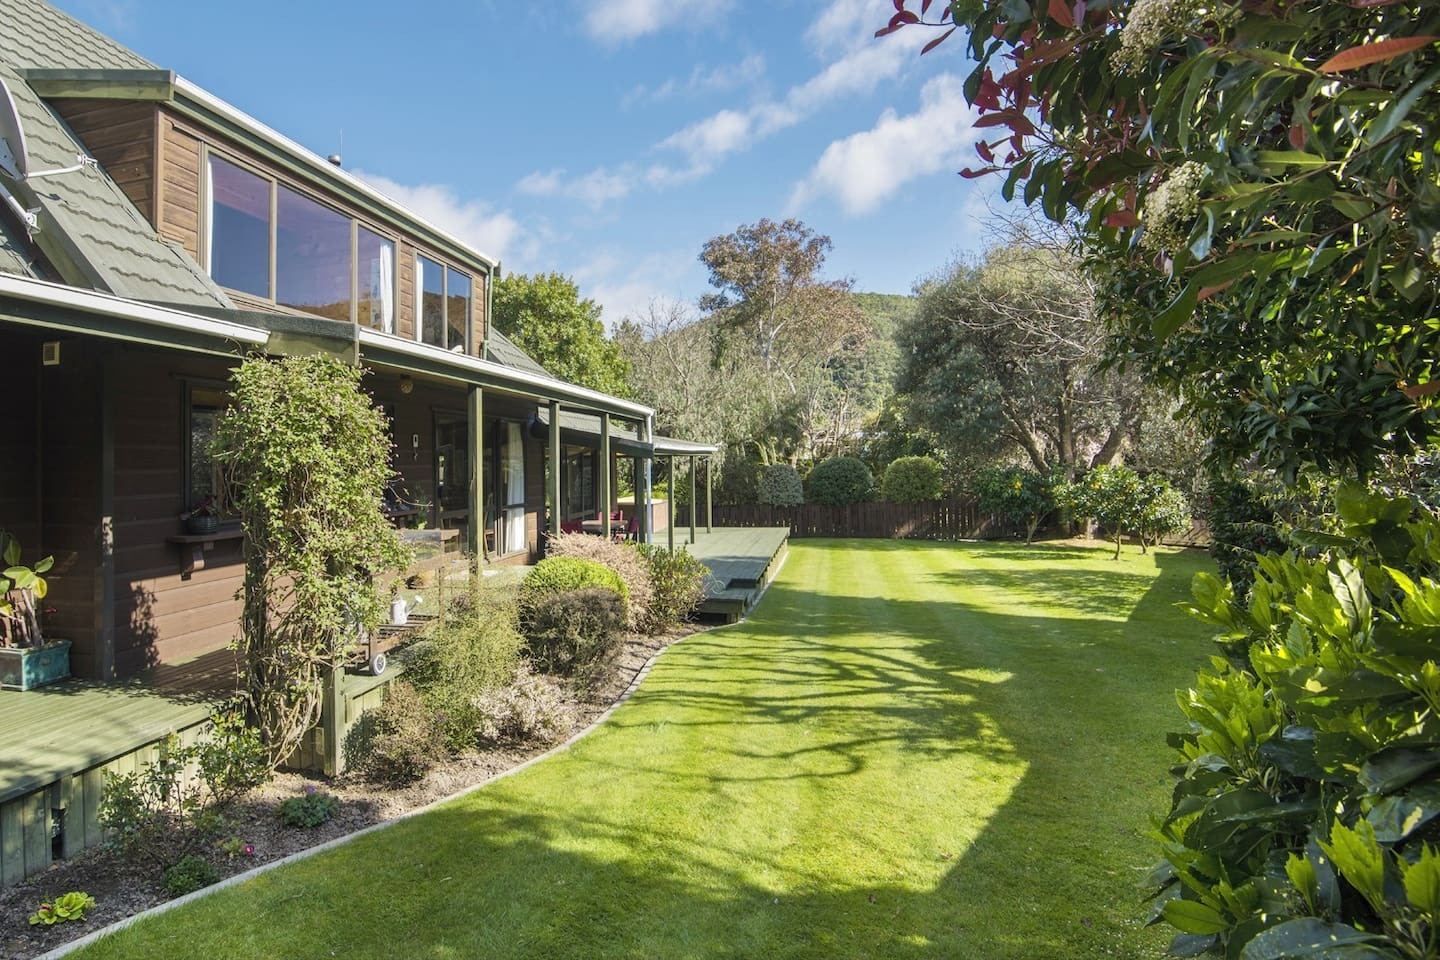 Mulberry house, - lawn and garden